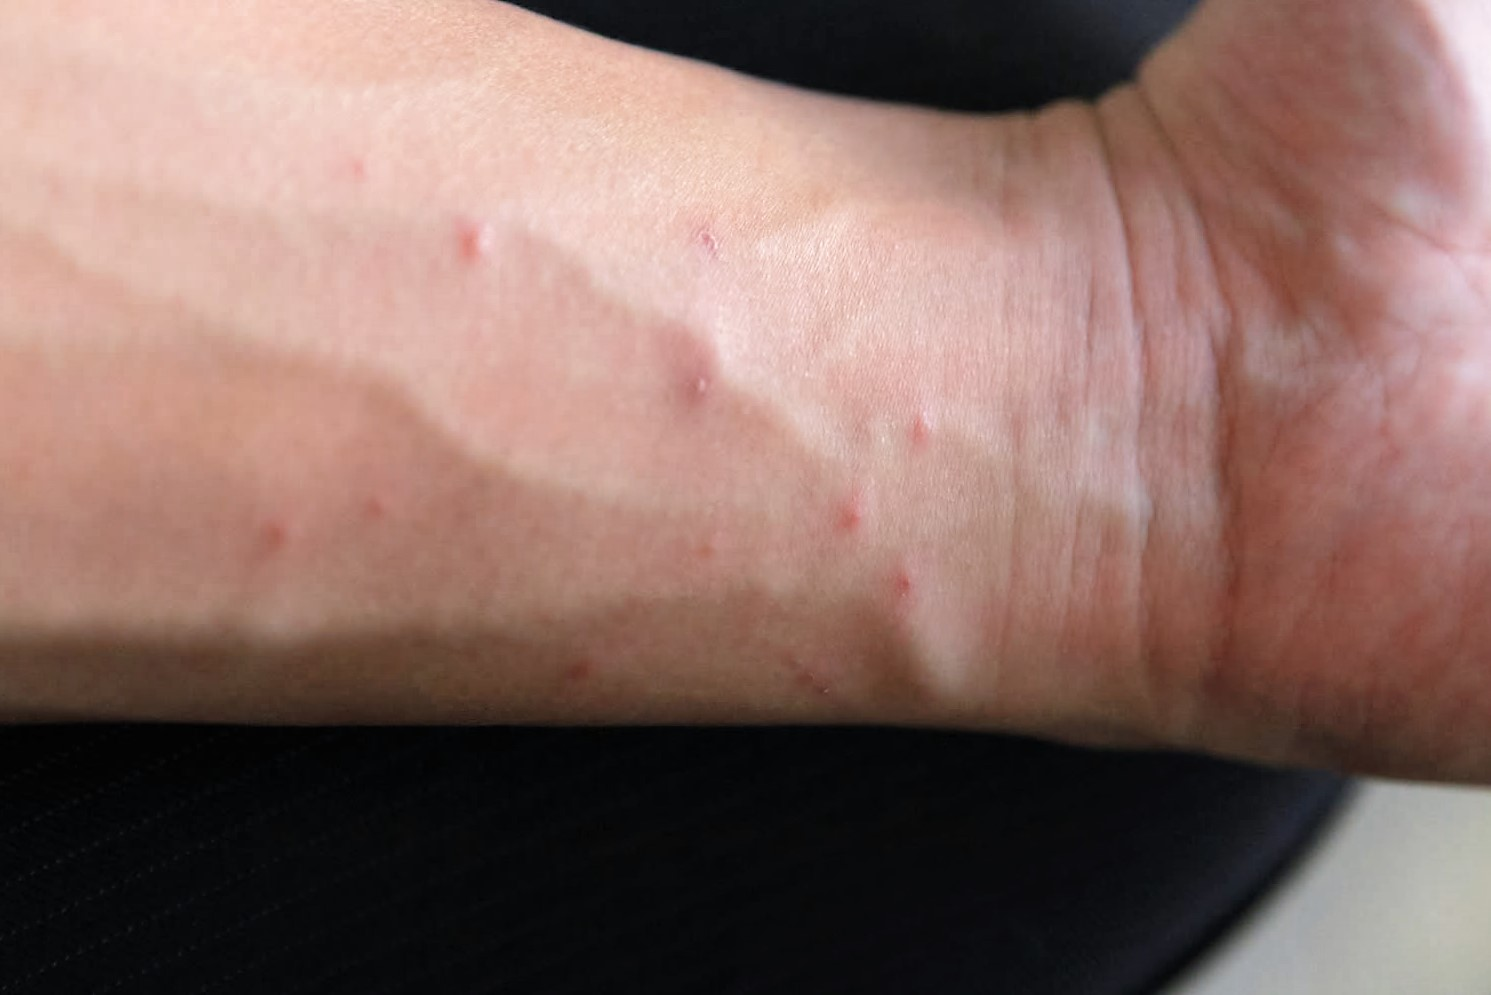 Scabies - Signs, Symptoms, OTC Treatment & Home Remedies